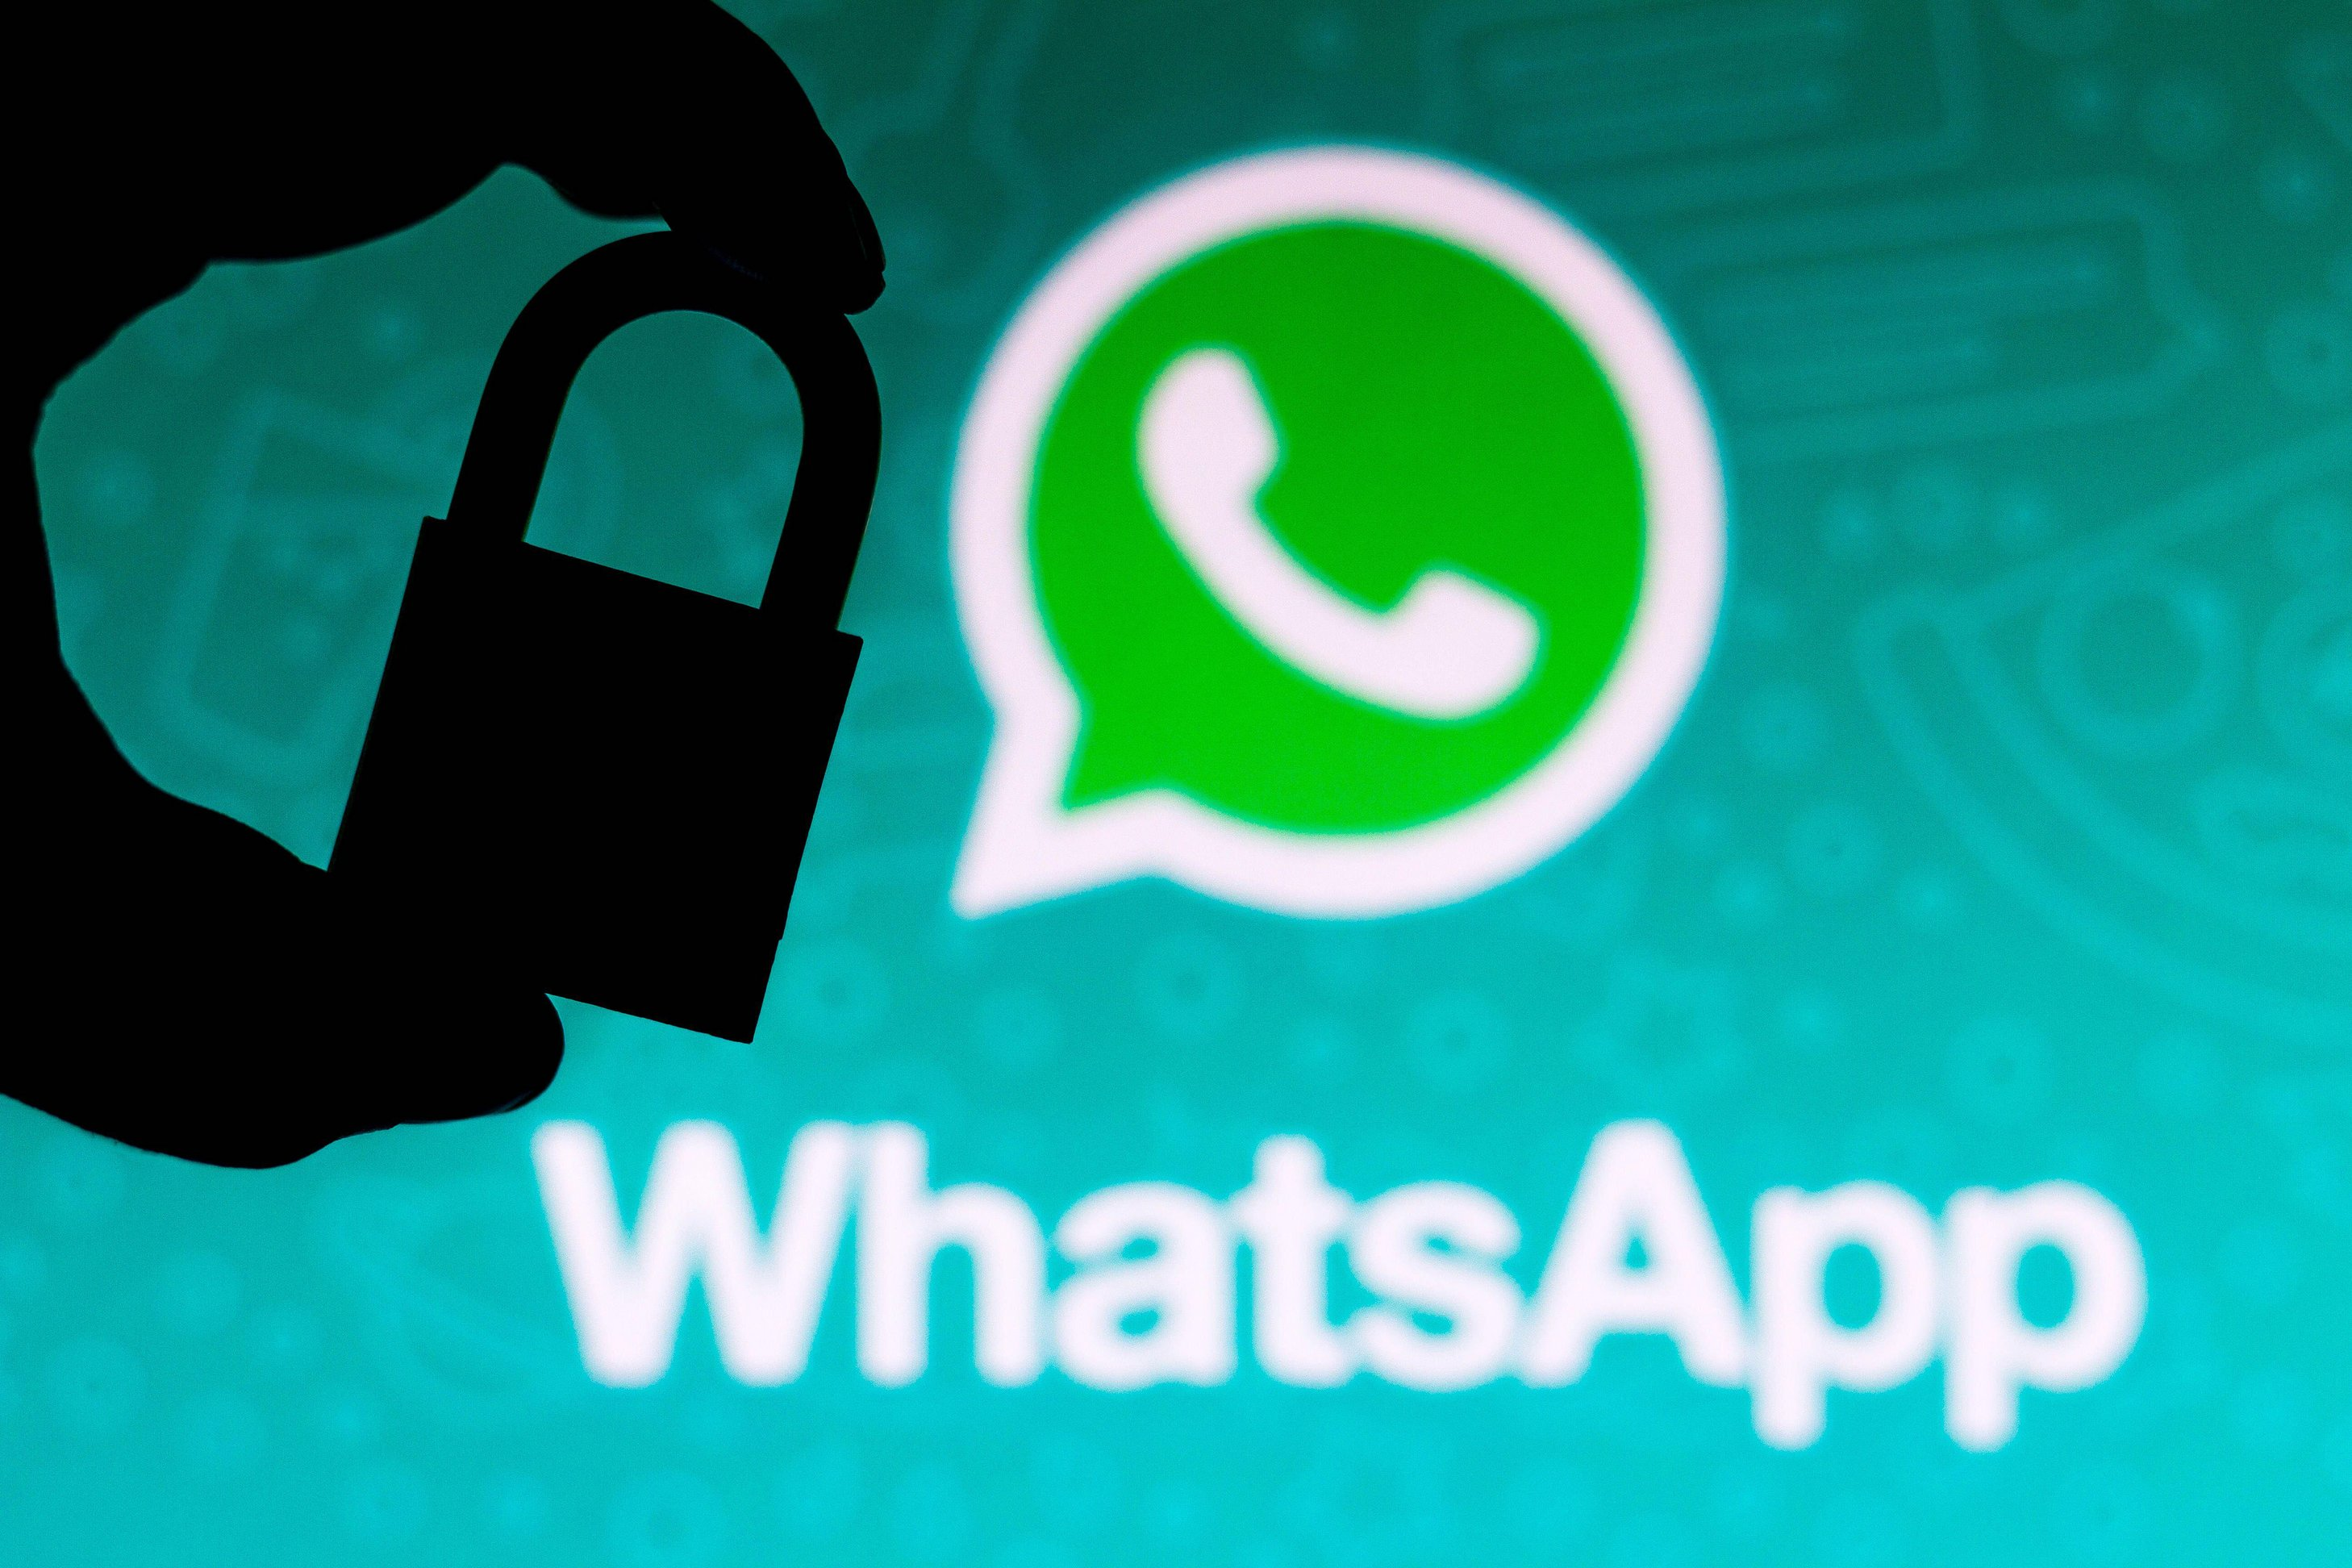 There's a simple way to read a WhatsApp message without alerting the sender